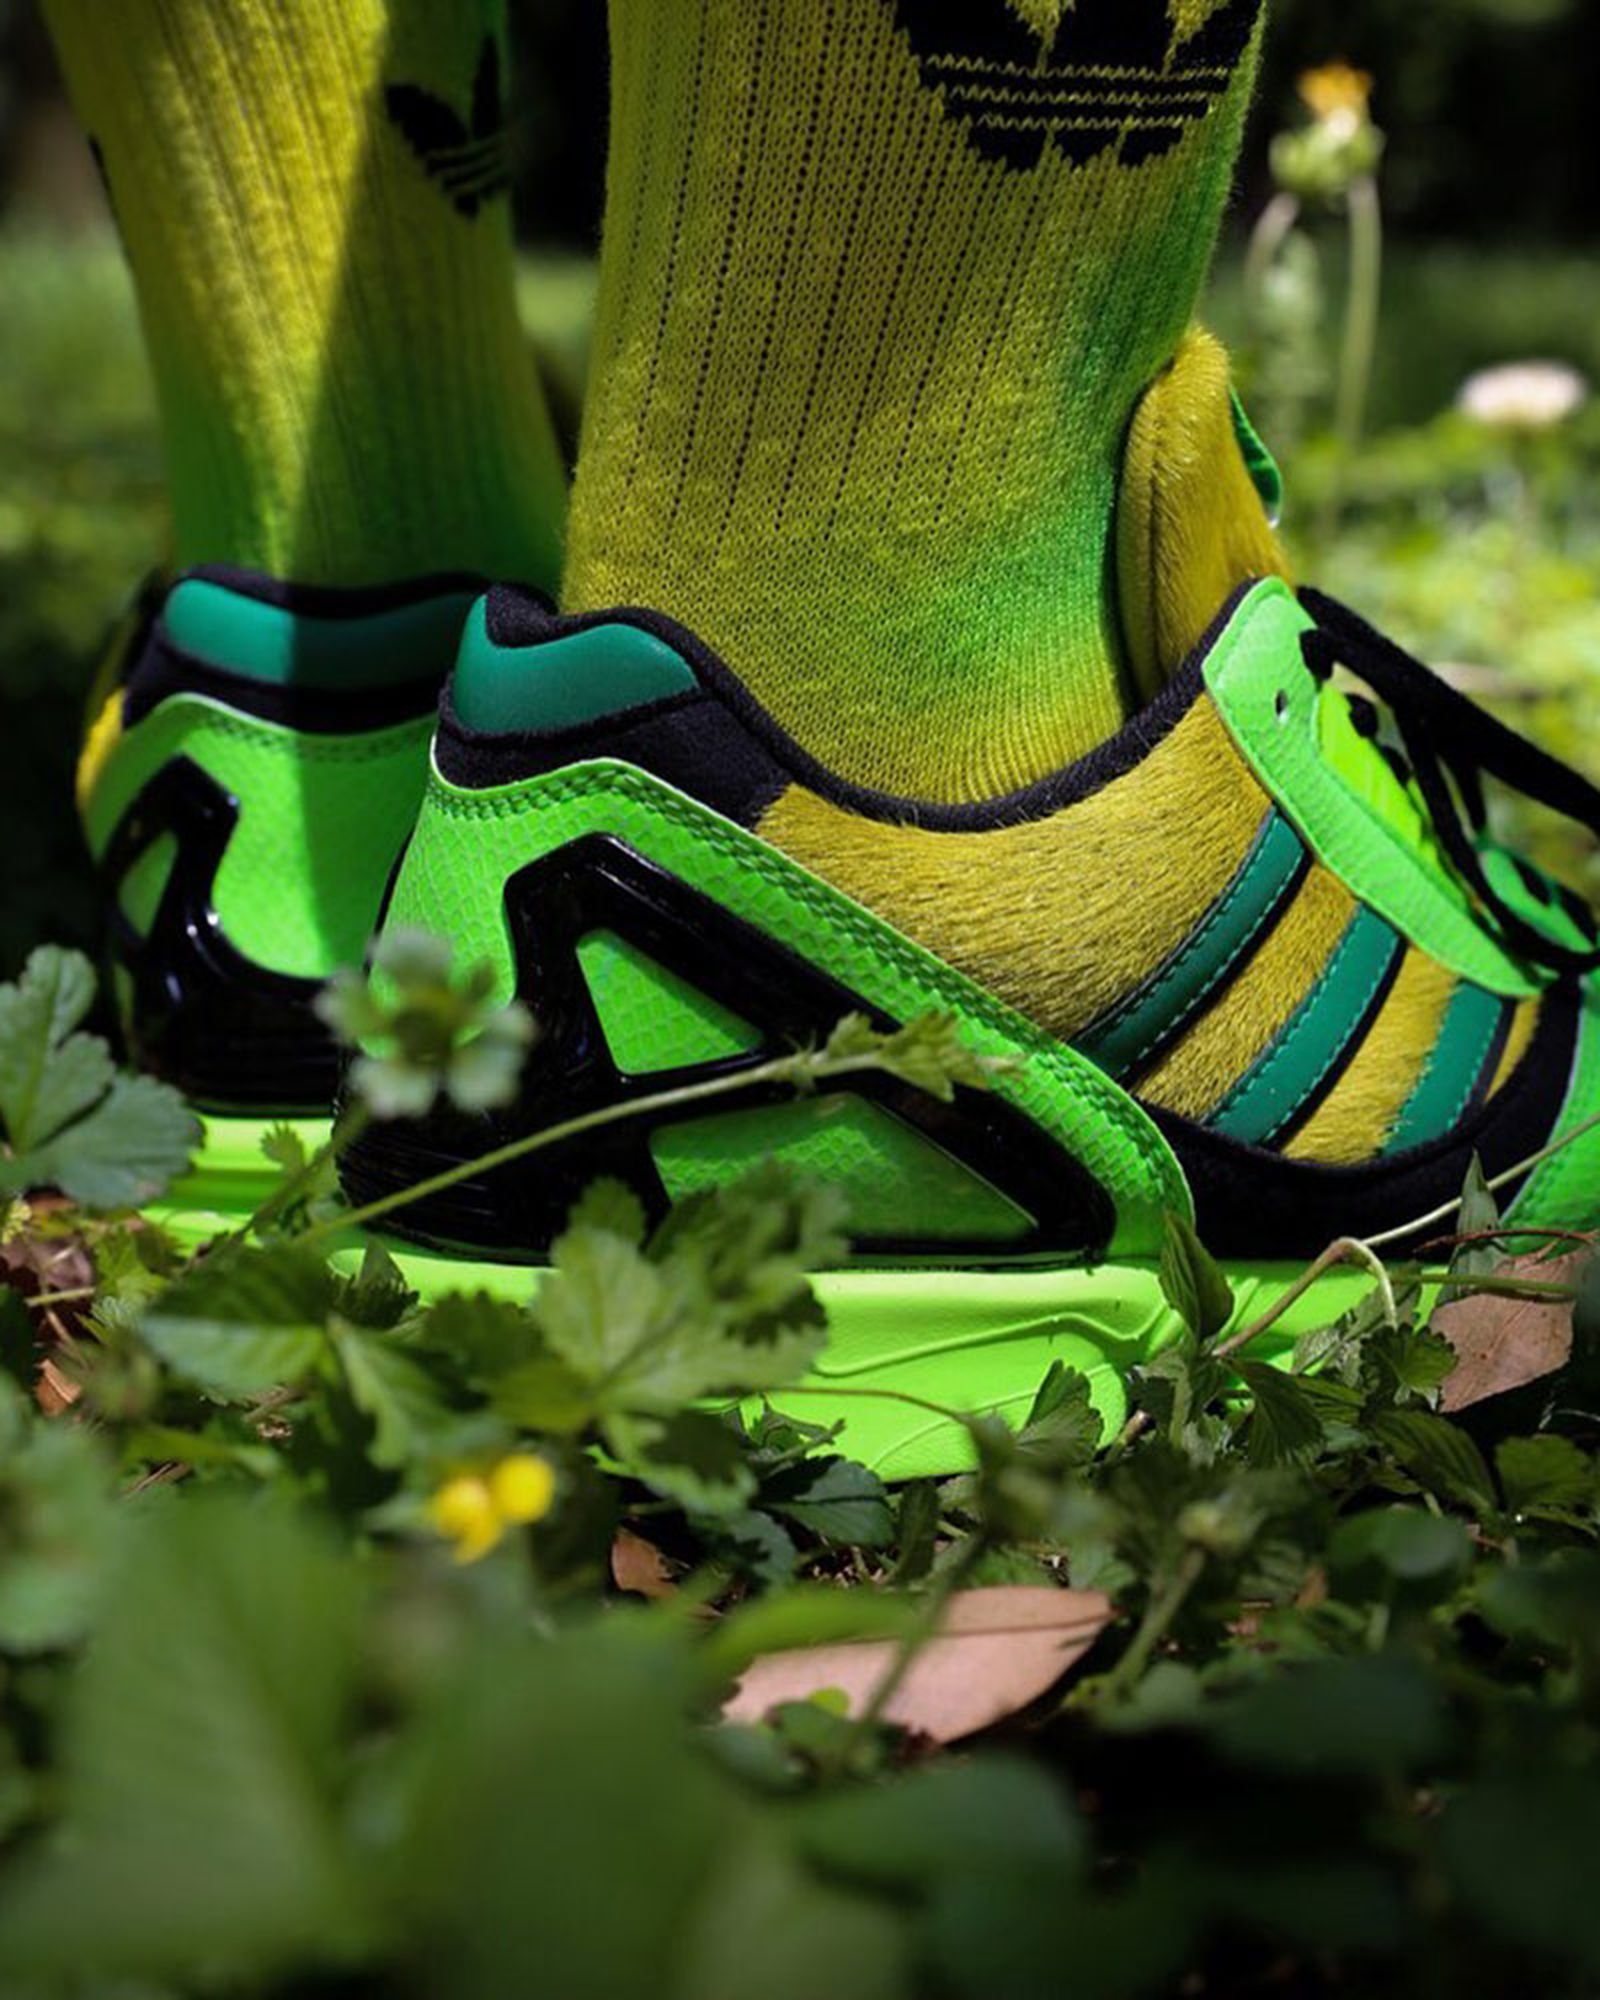 atmos x adidas ZX 8000 heel view yellow and green and black